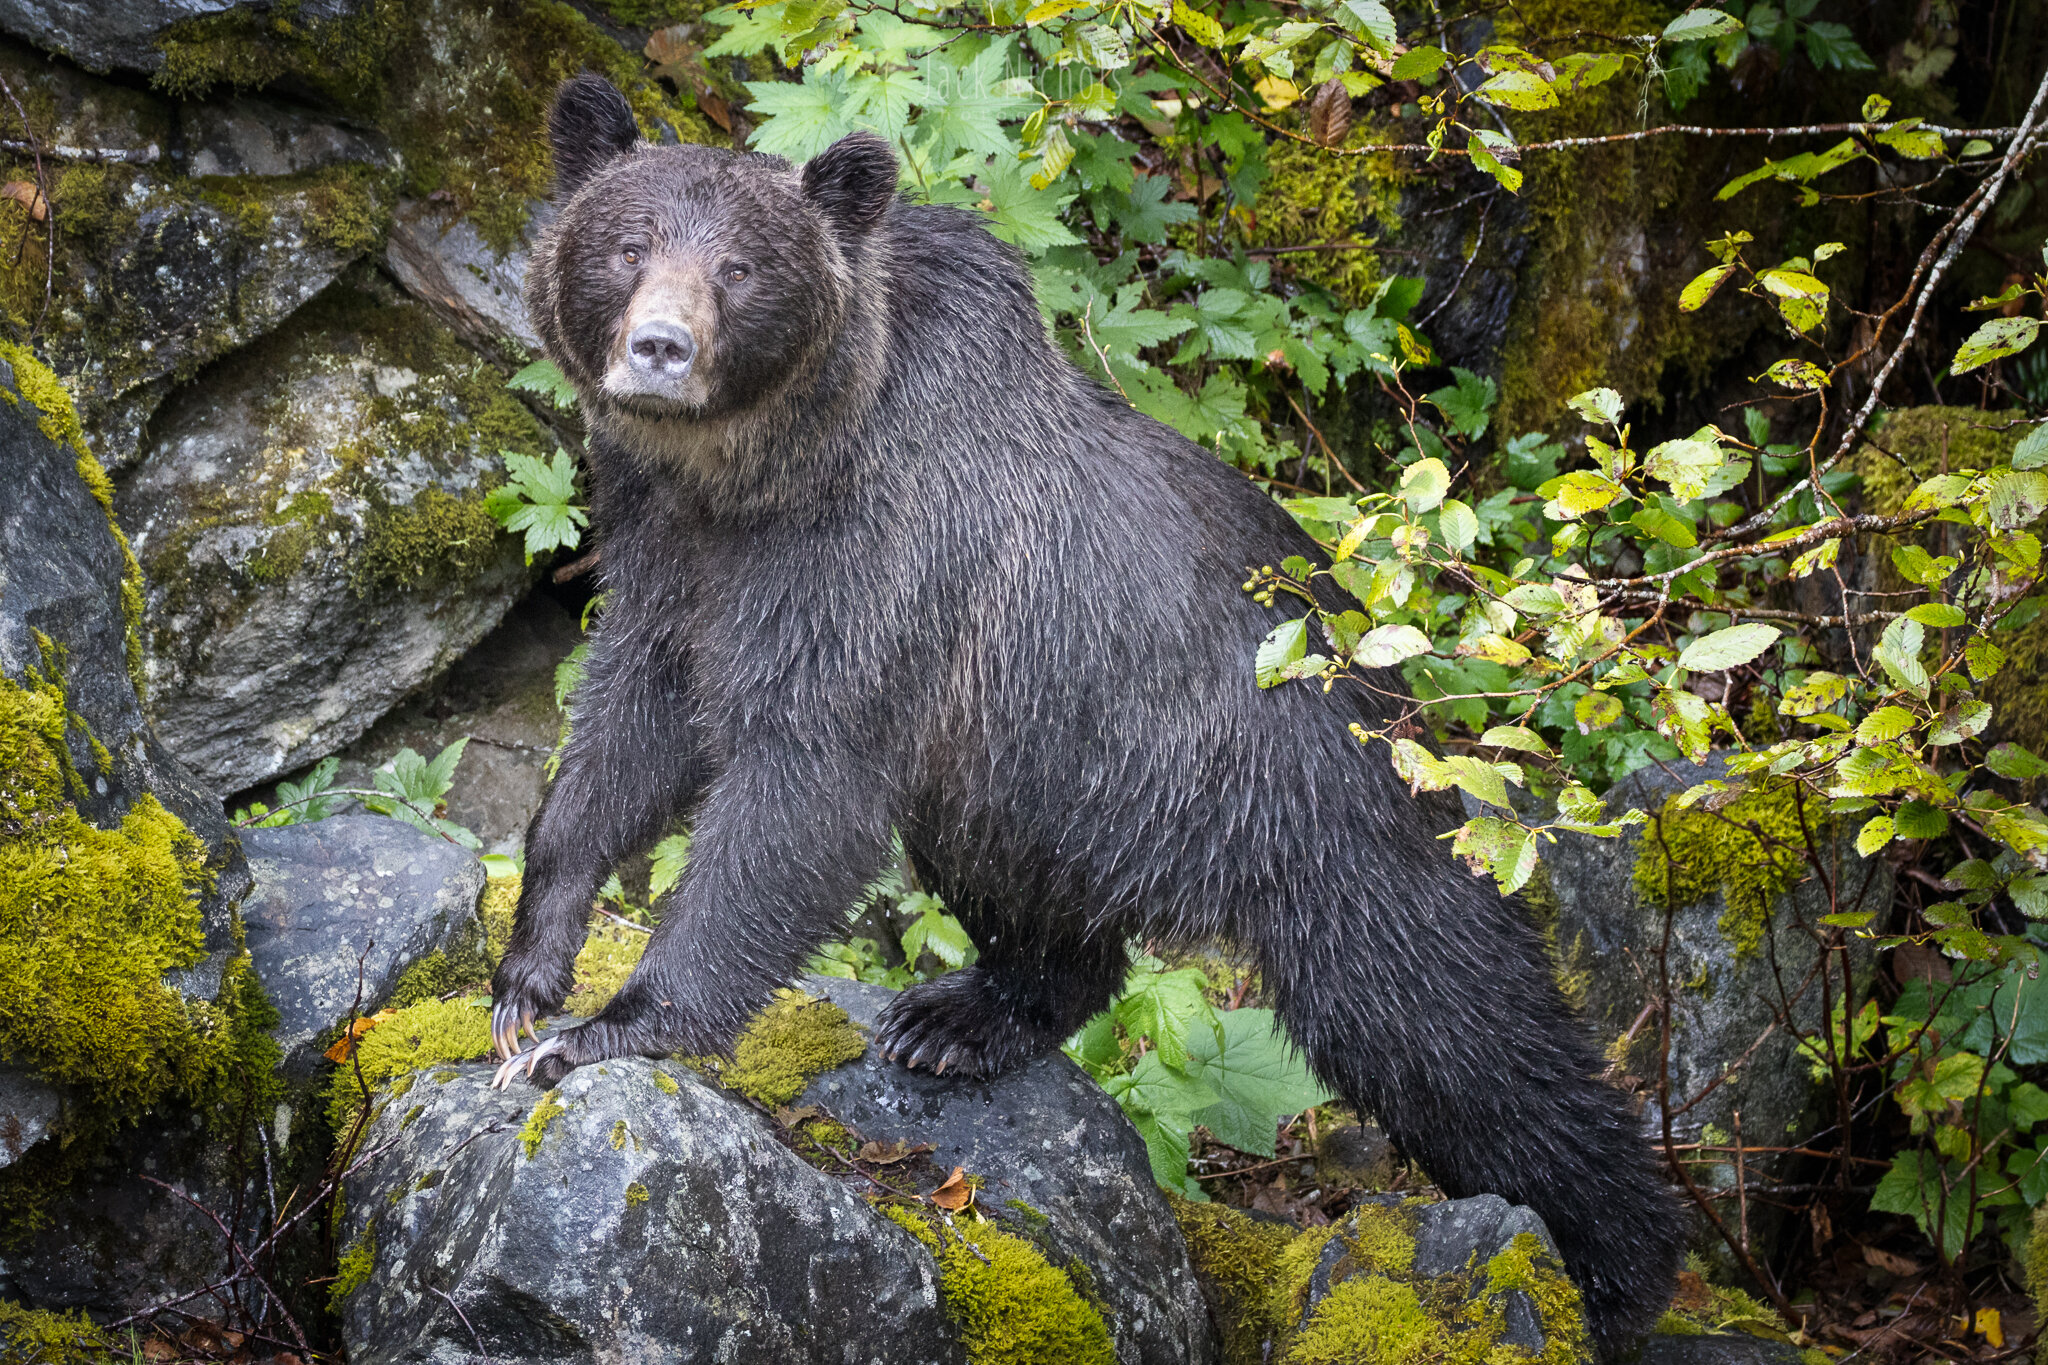 Campbell River, Toba Inlet - Grizzly bear looking at camera on rocks-20190908.jpg